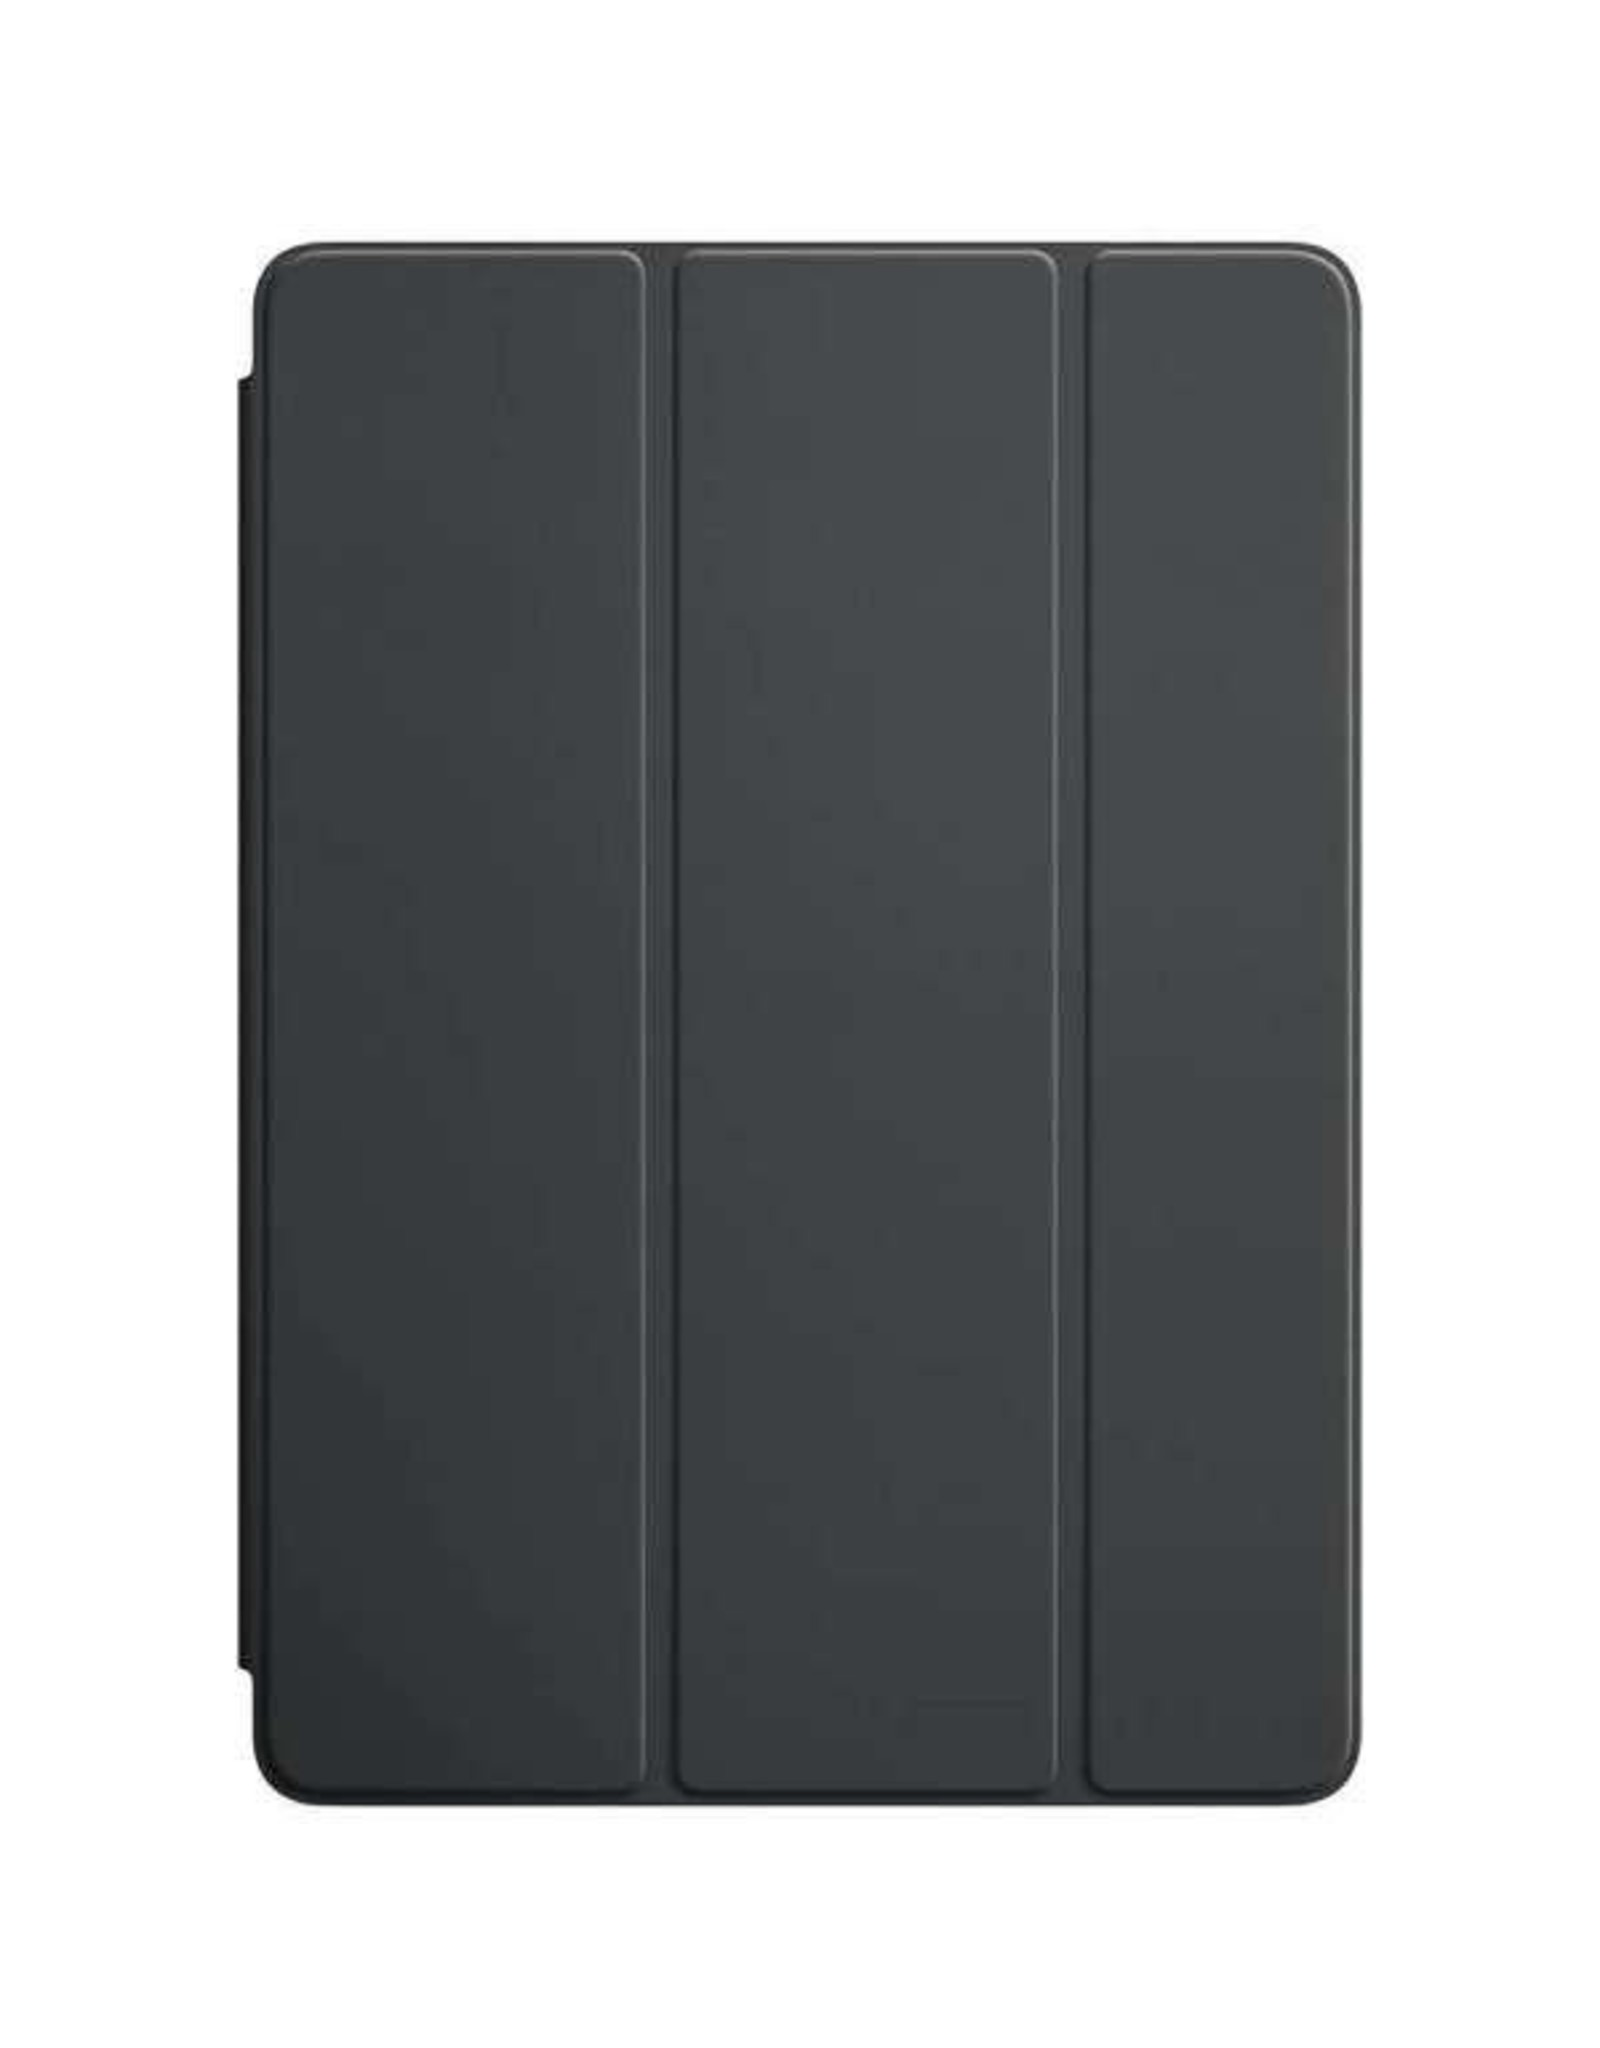 Apple Apple iPad Smart Cover - Charcoal Gray EOL